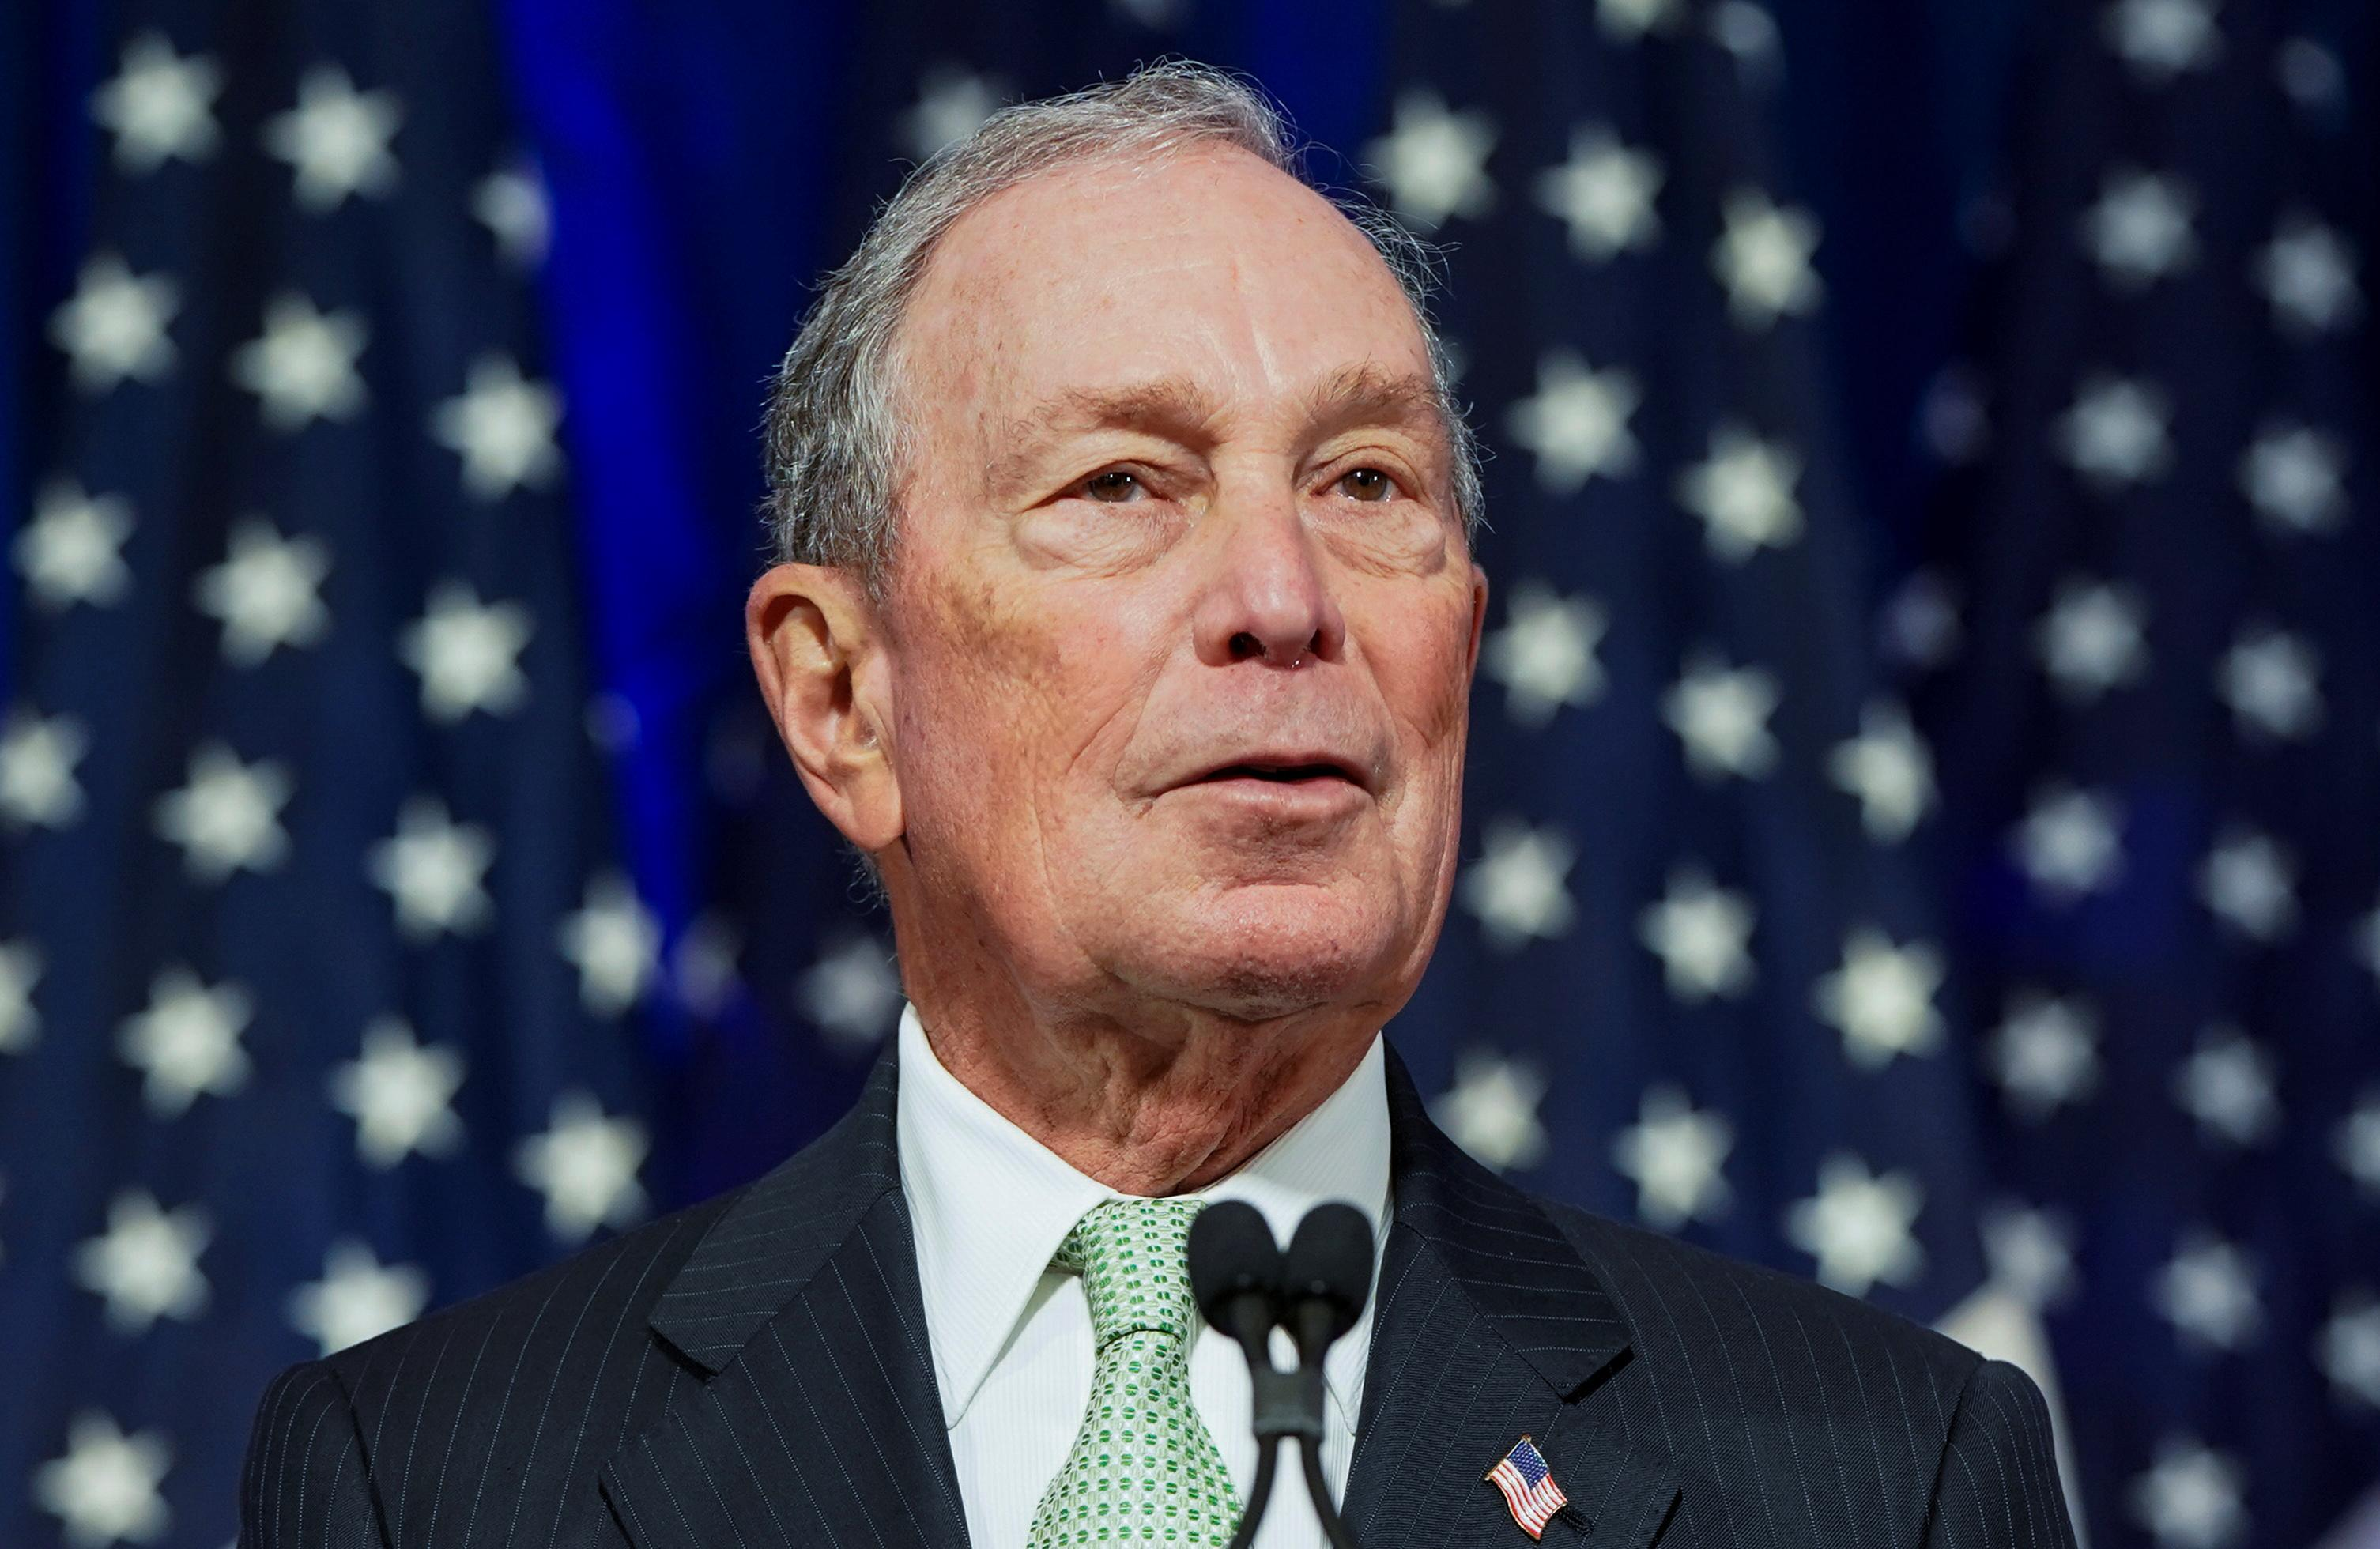 Breakingviews TV: Mike Bloomberg